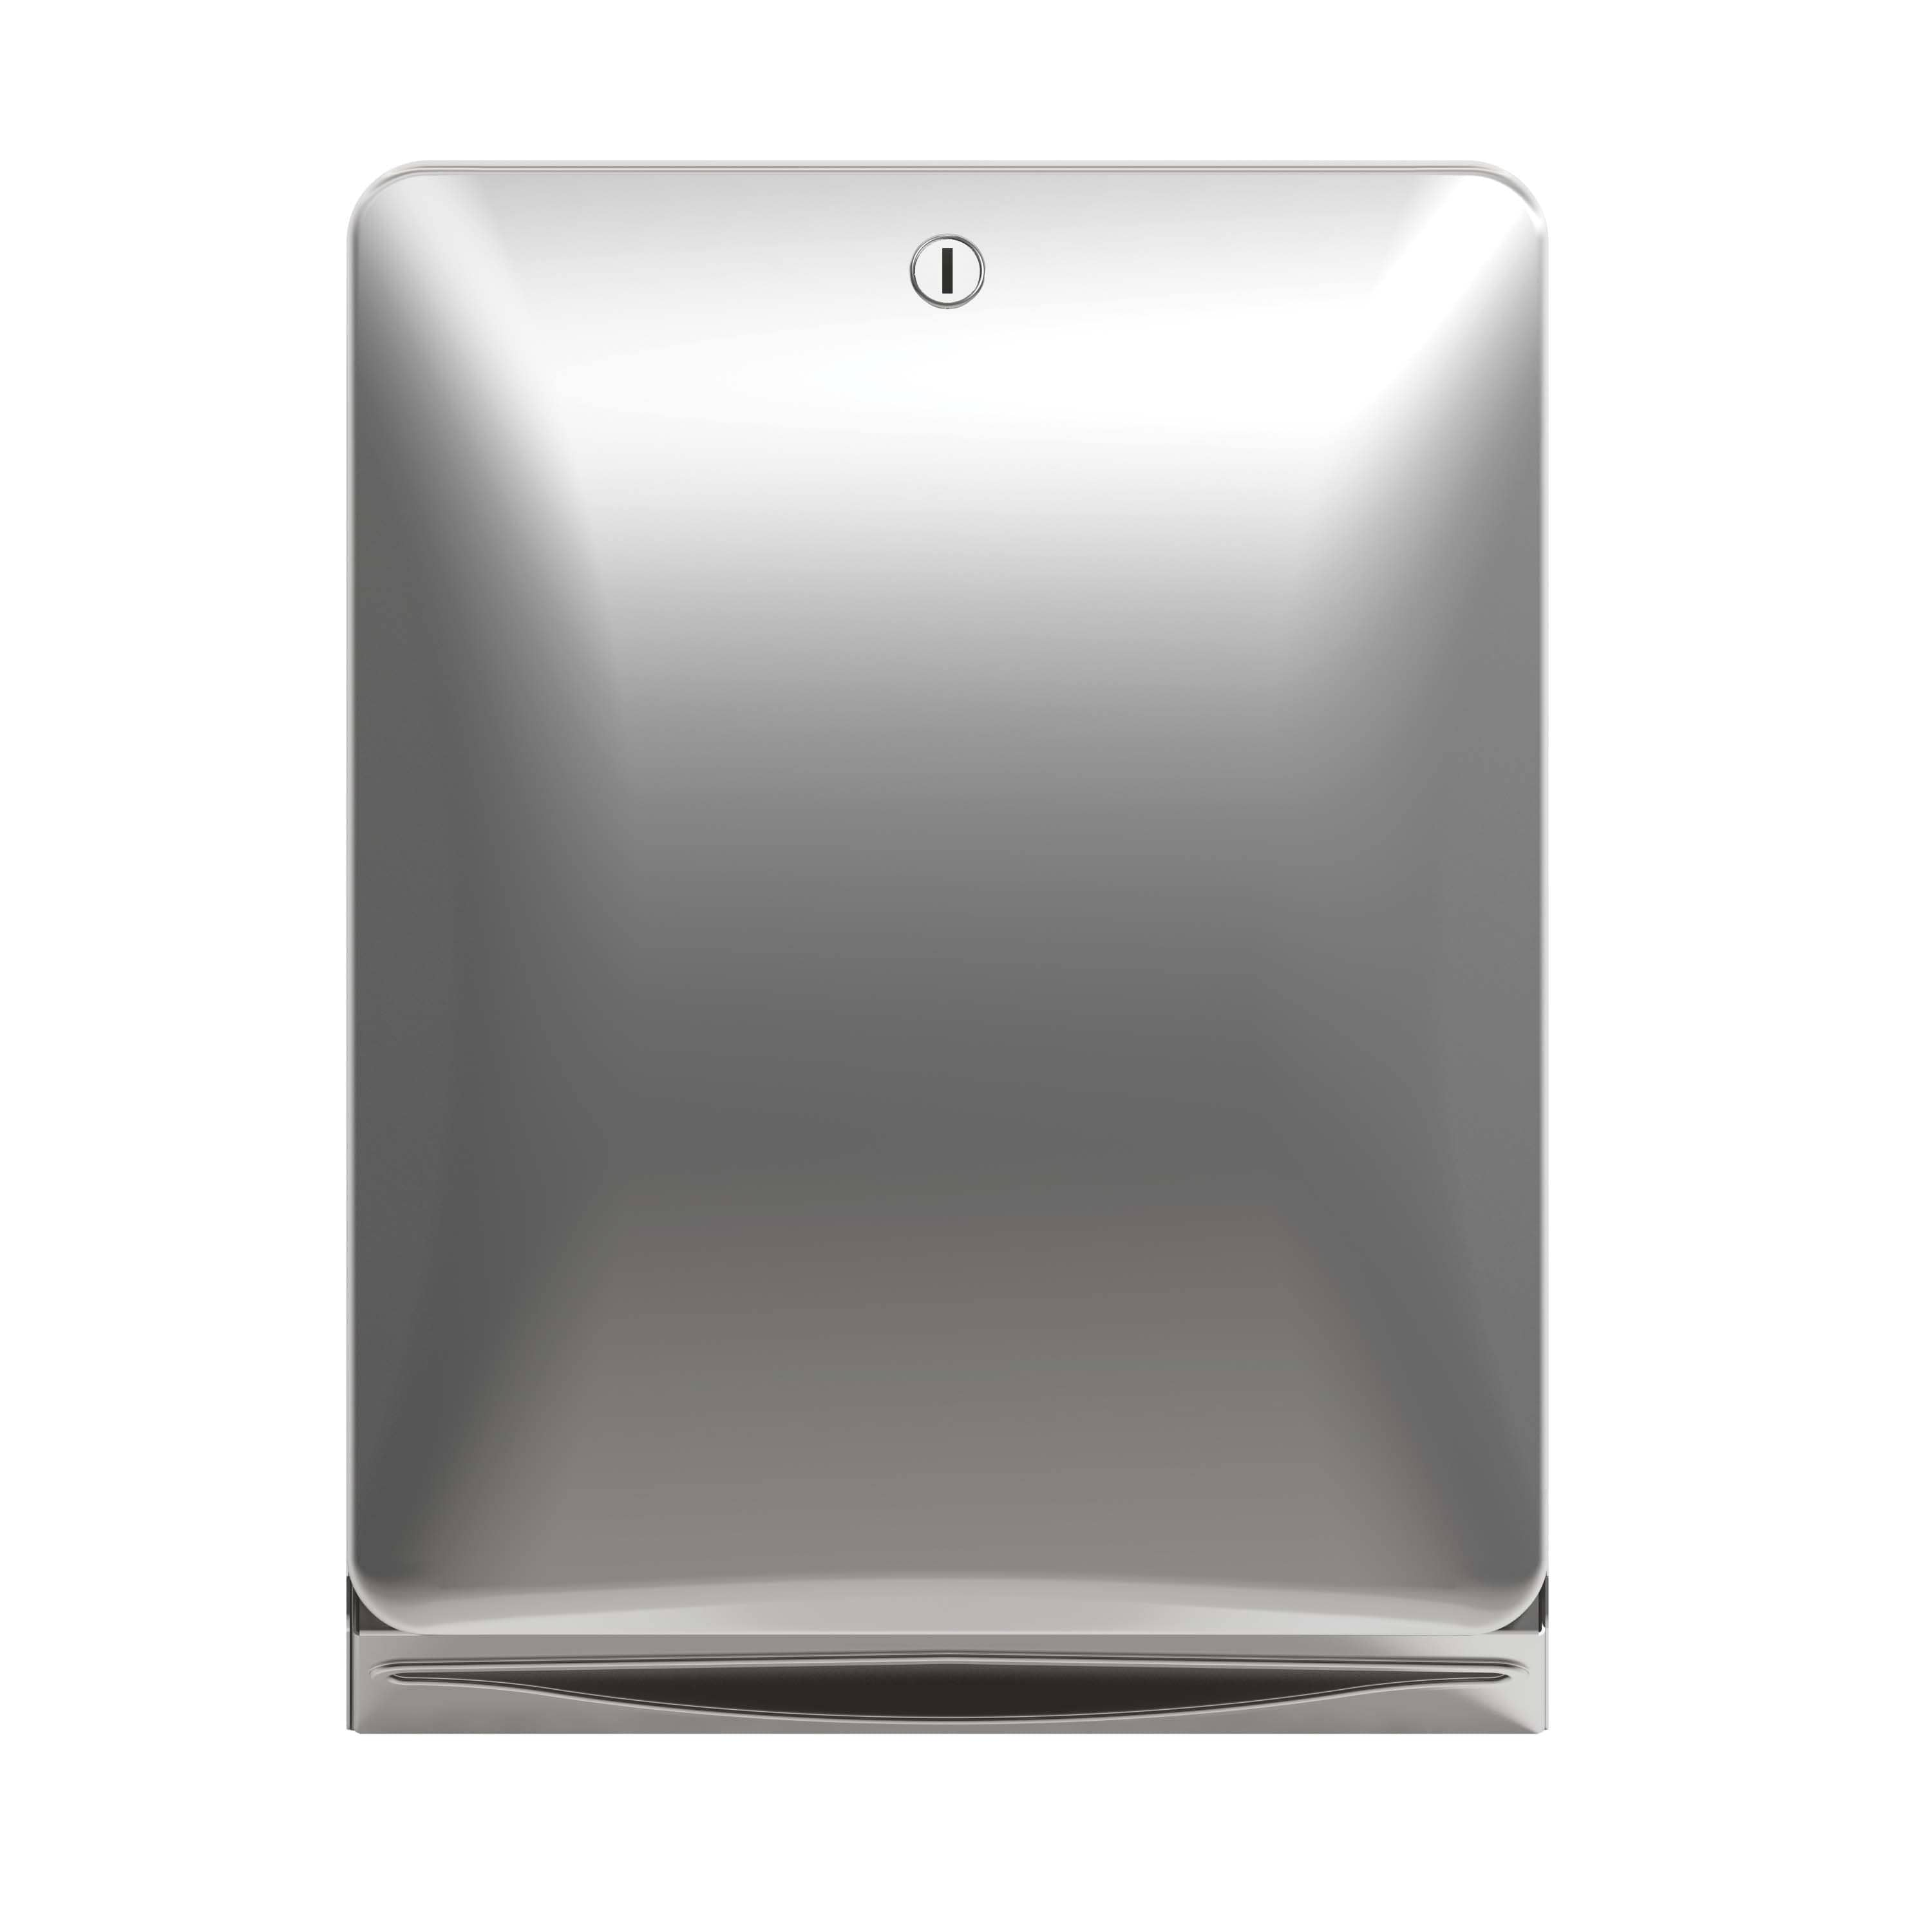 Bradley 2A10-11 Commercial Paper Towel Dispenser, Surface-Mounted, Stainless Steel - TotalRestroom.com